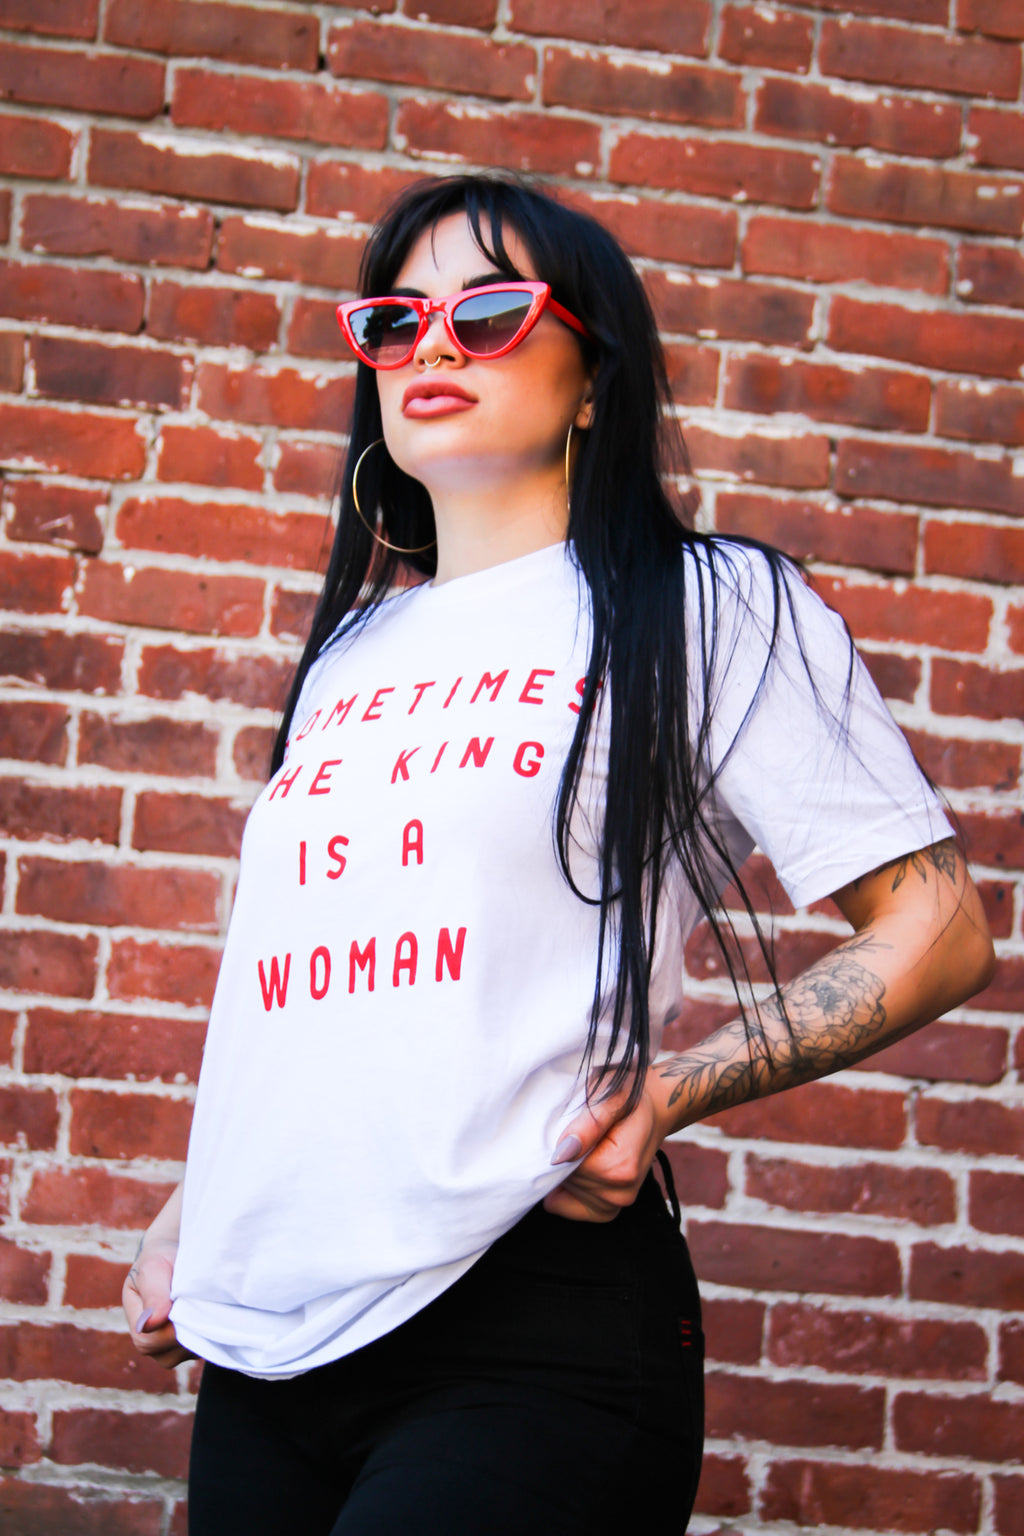 "Bey ""The King Is A Woman"" Tee"